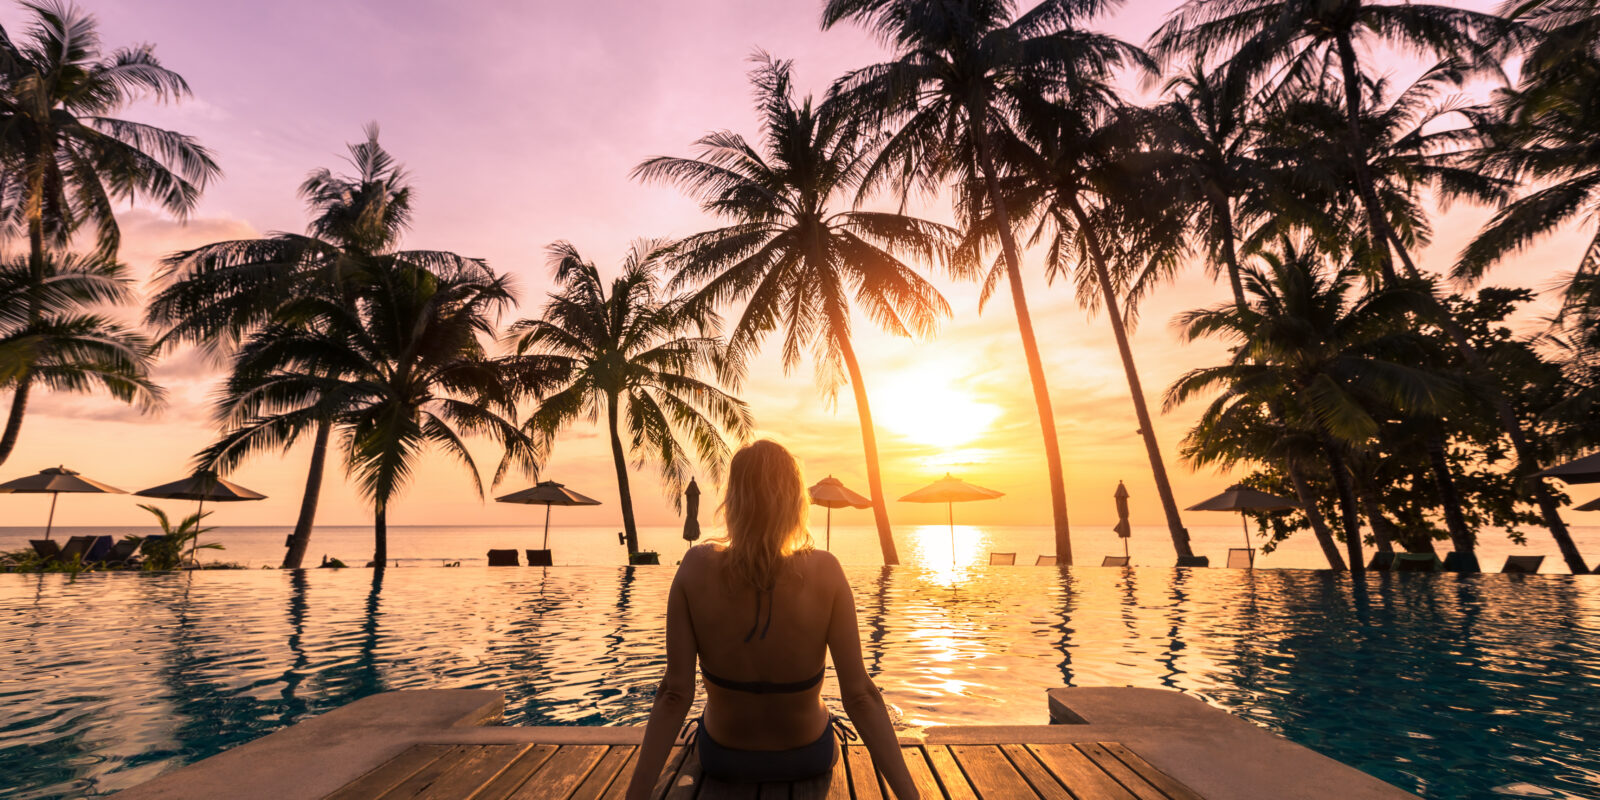 Woman relaxing by a pool with sunset and palm trees